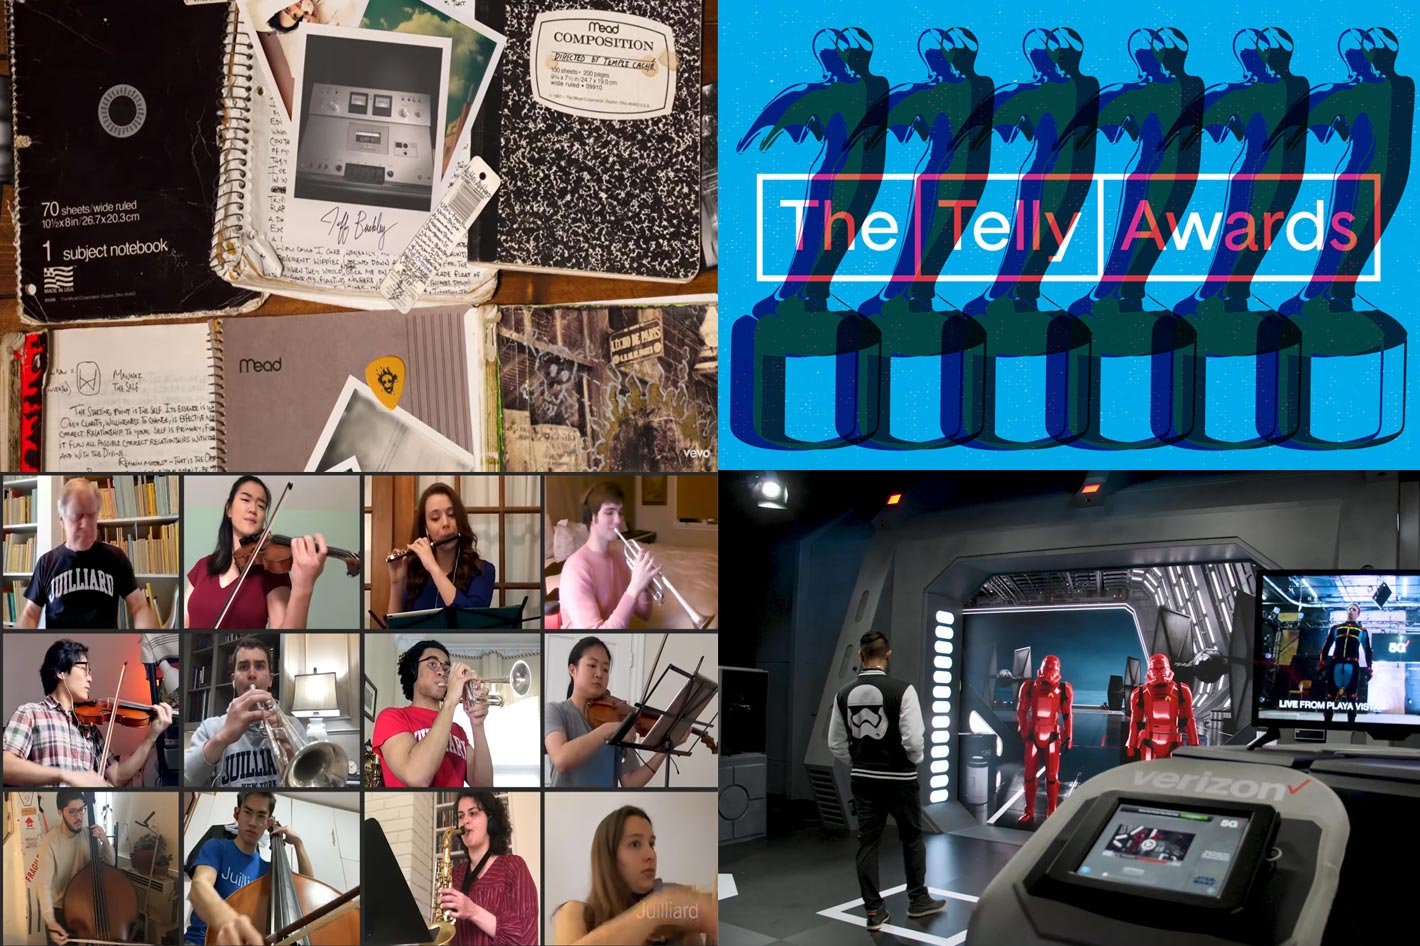 Telly Awards: from Jeff Buckley's music video to Star Wars